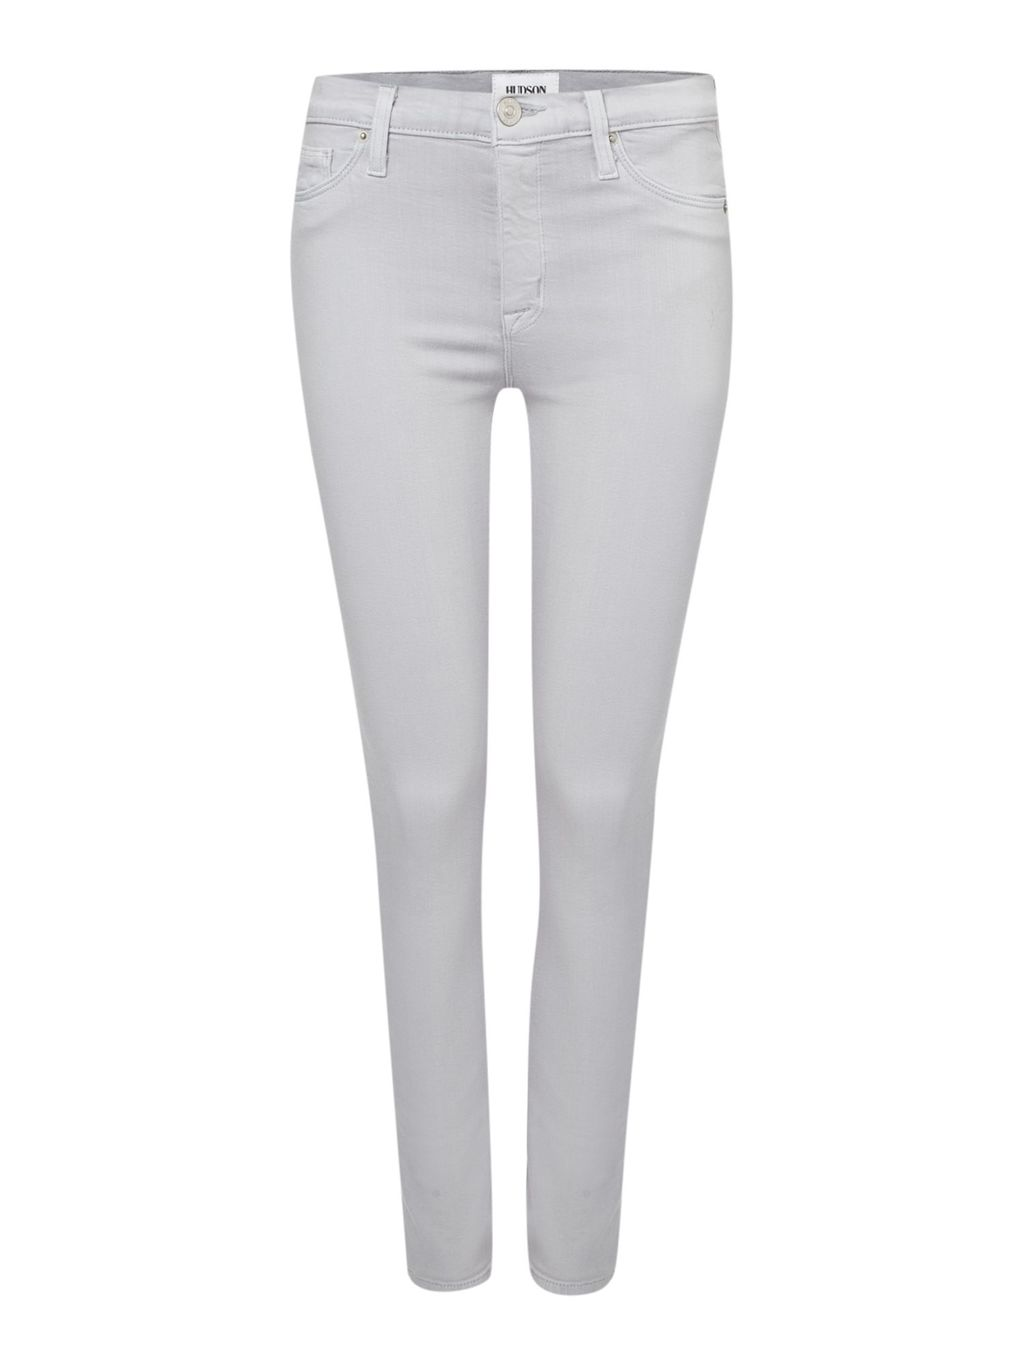 Nico Midrise Super Skinny Jean In Lunette, White - style: skinny leg; length: standard; pattern: plain; pocket detail: traditional 5 pocket; waist: mid/regular rise; predominant colour: white; occasions: casual; fibres: cotton - mix; texture group: denim; pattern type: fabric; season: s/s 2016; wardrobe: highlight